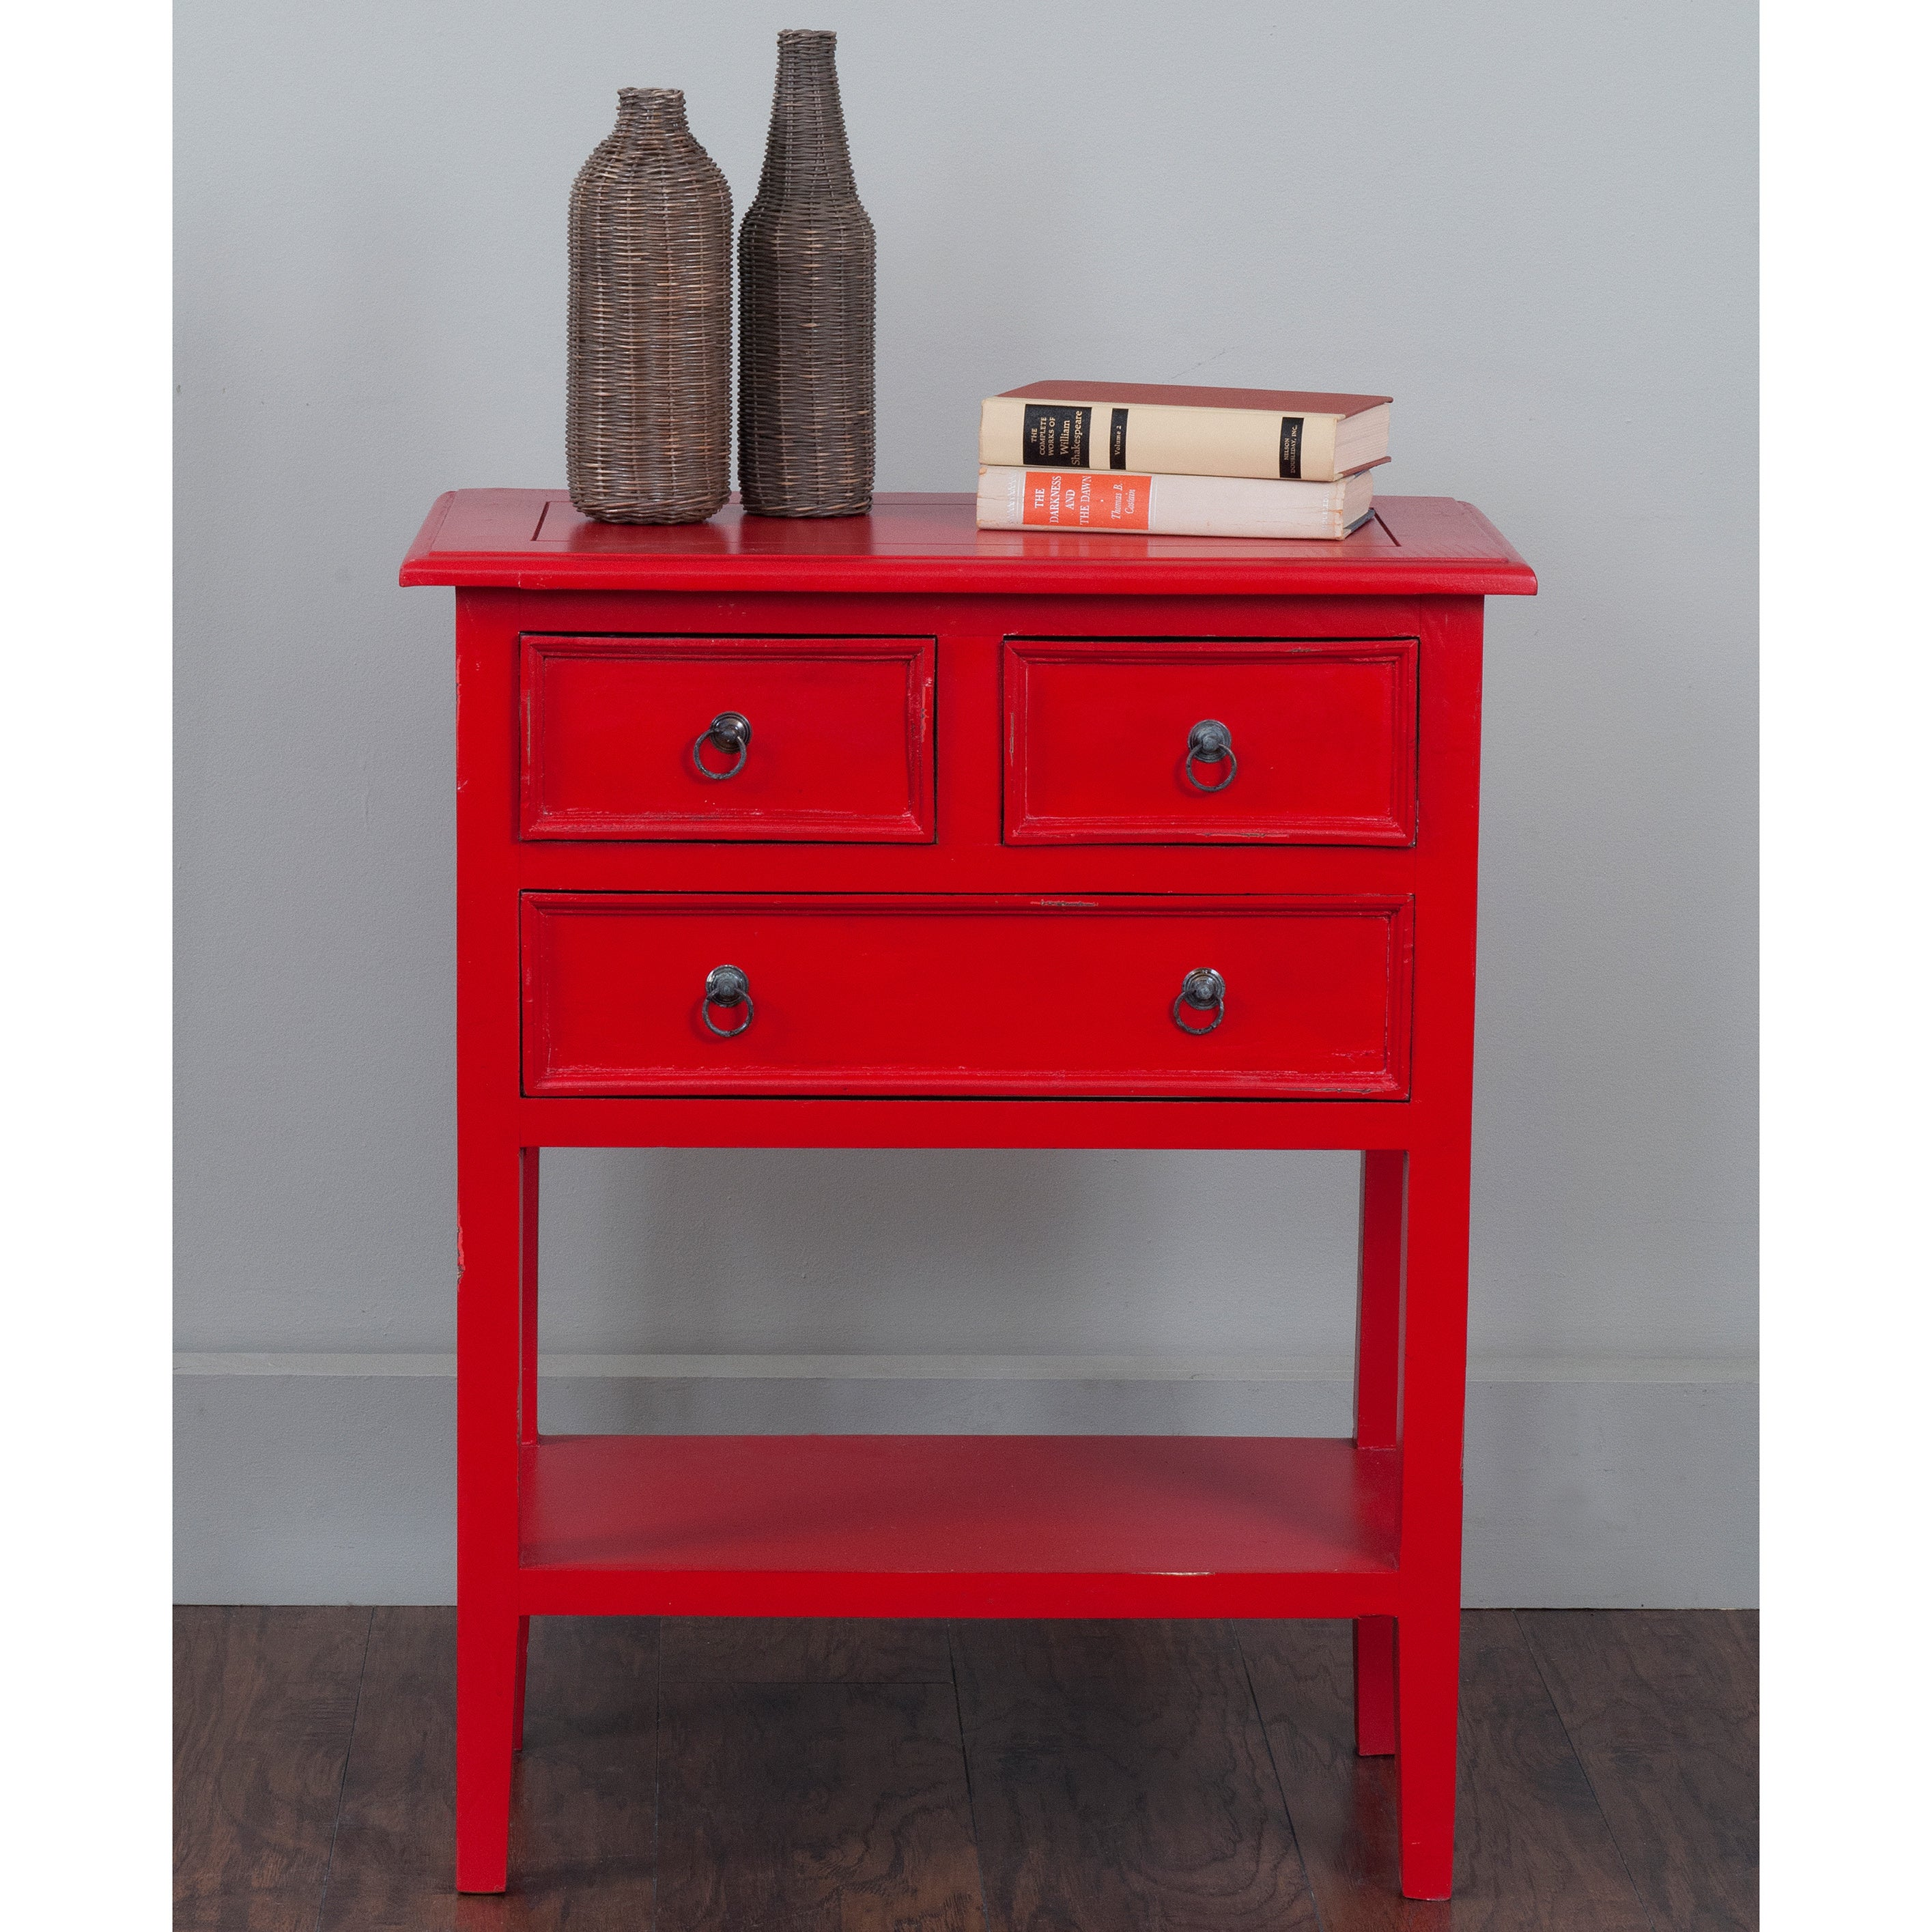 - Shop Decorative Kent Casual Red Square Accent Table - Overstock